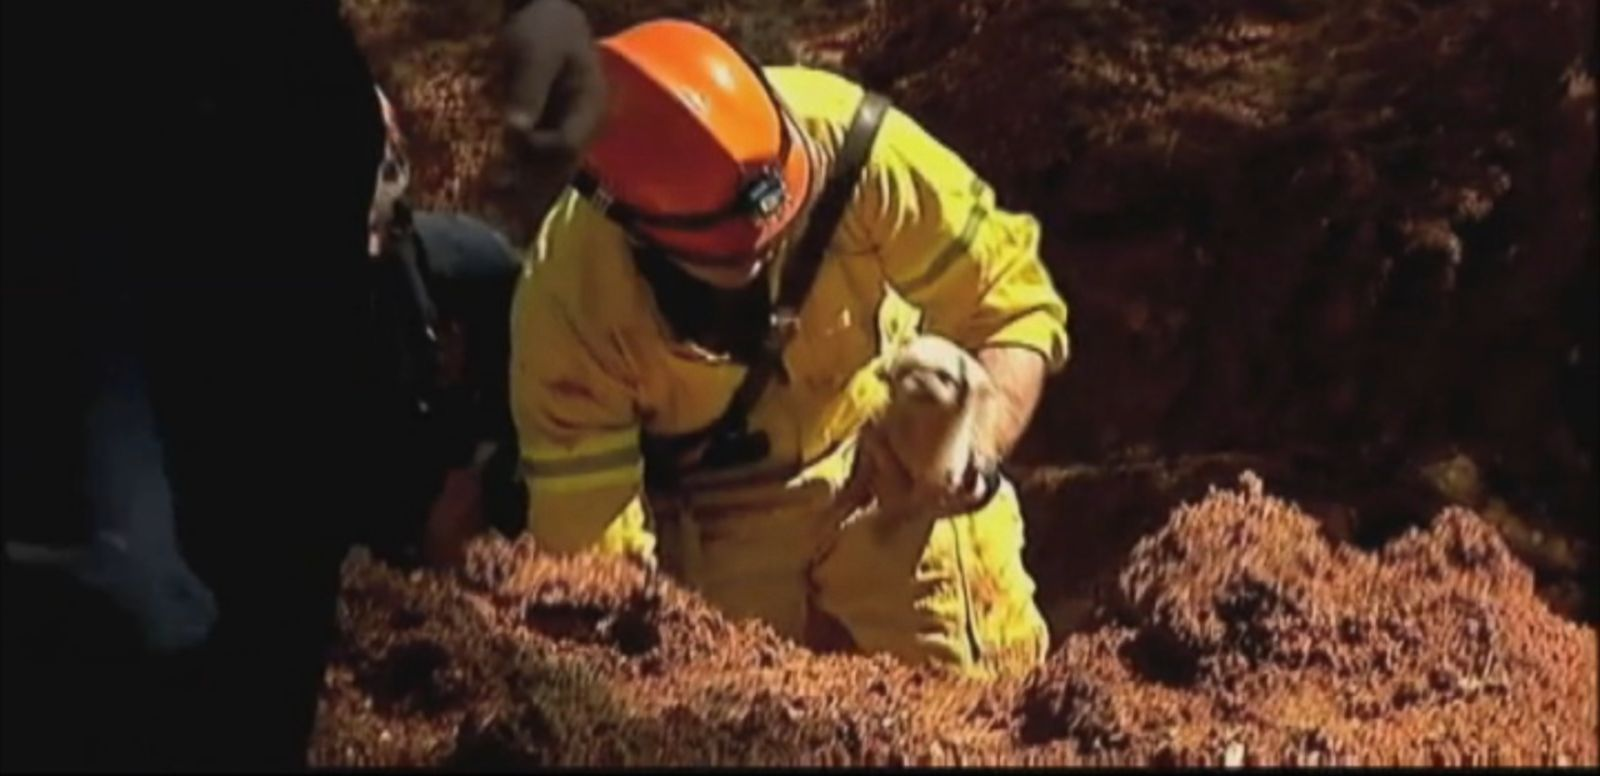 VIDEO: Toshi, a 6-week-old puppy, was trapped in a six-foot deep hole near an Atlanta-area apartment building.